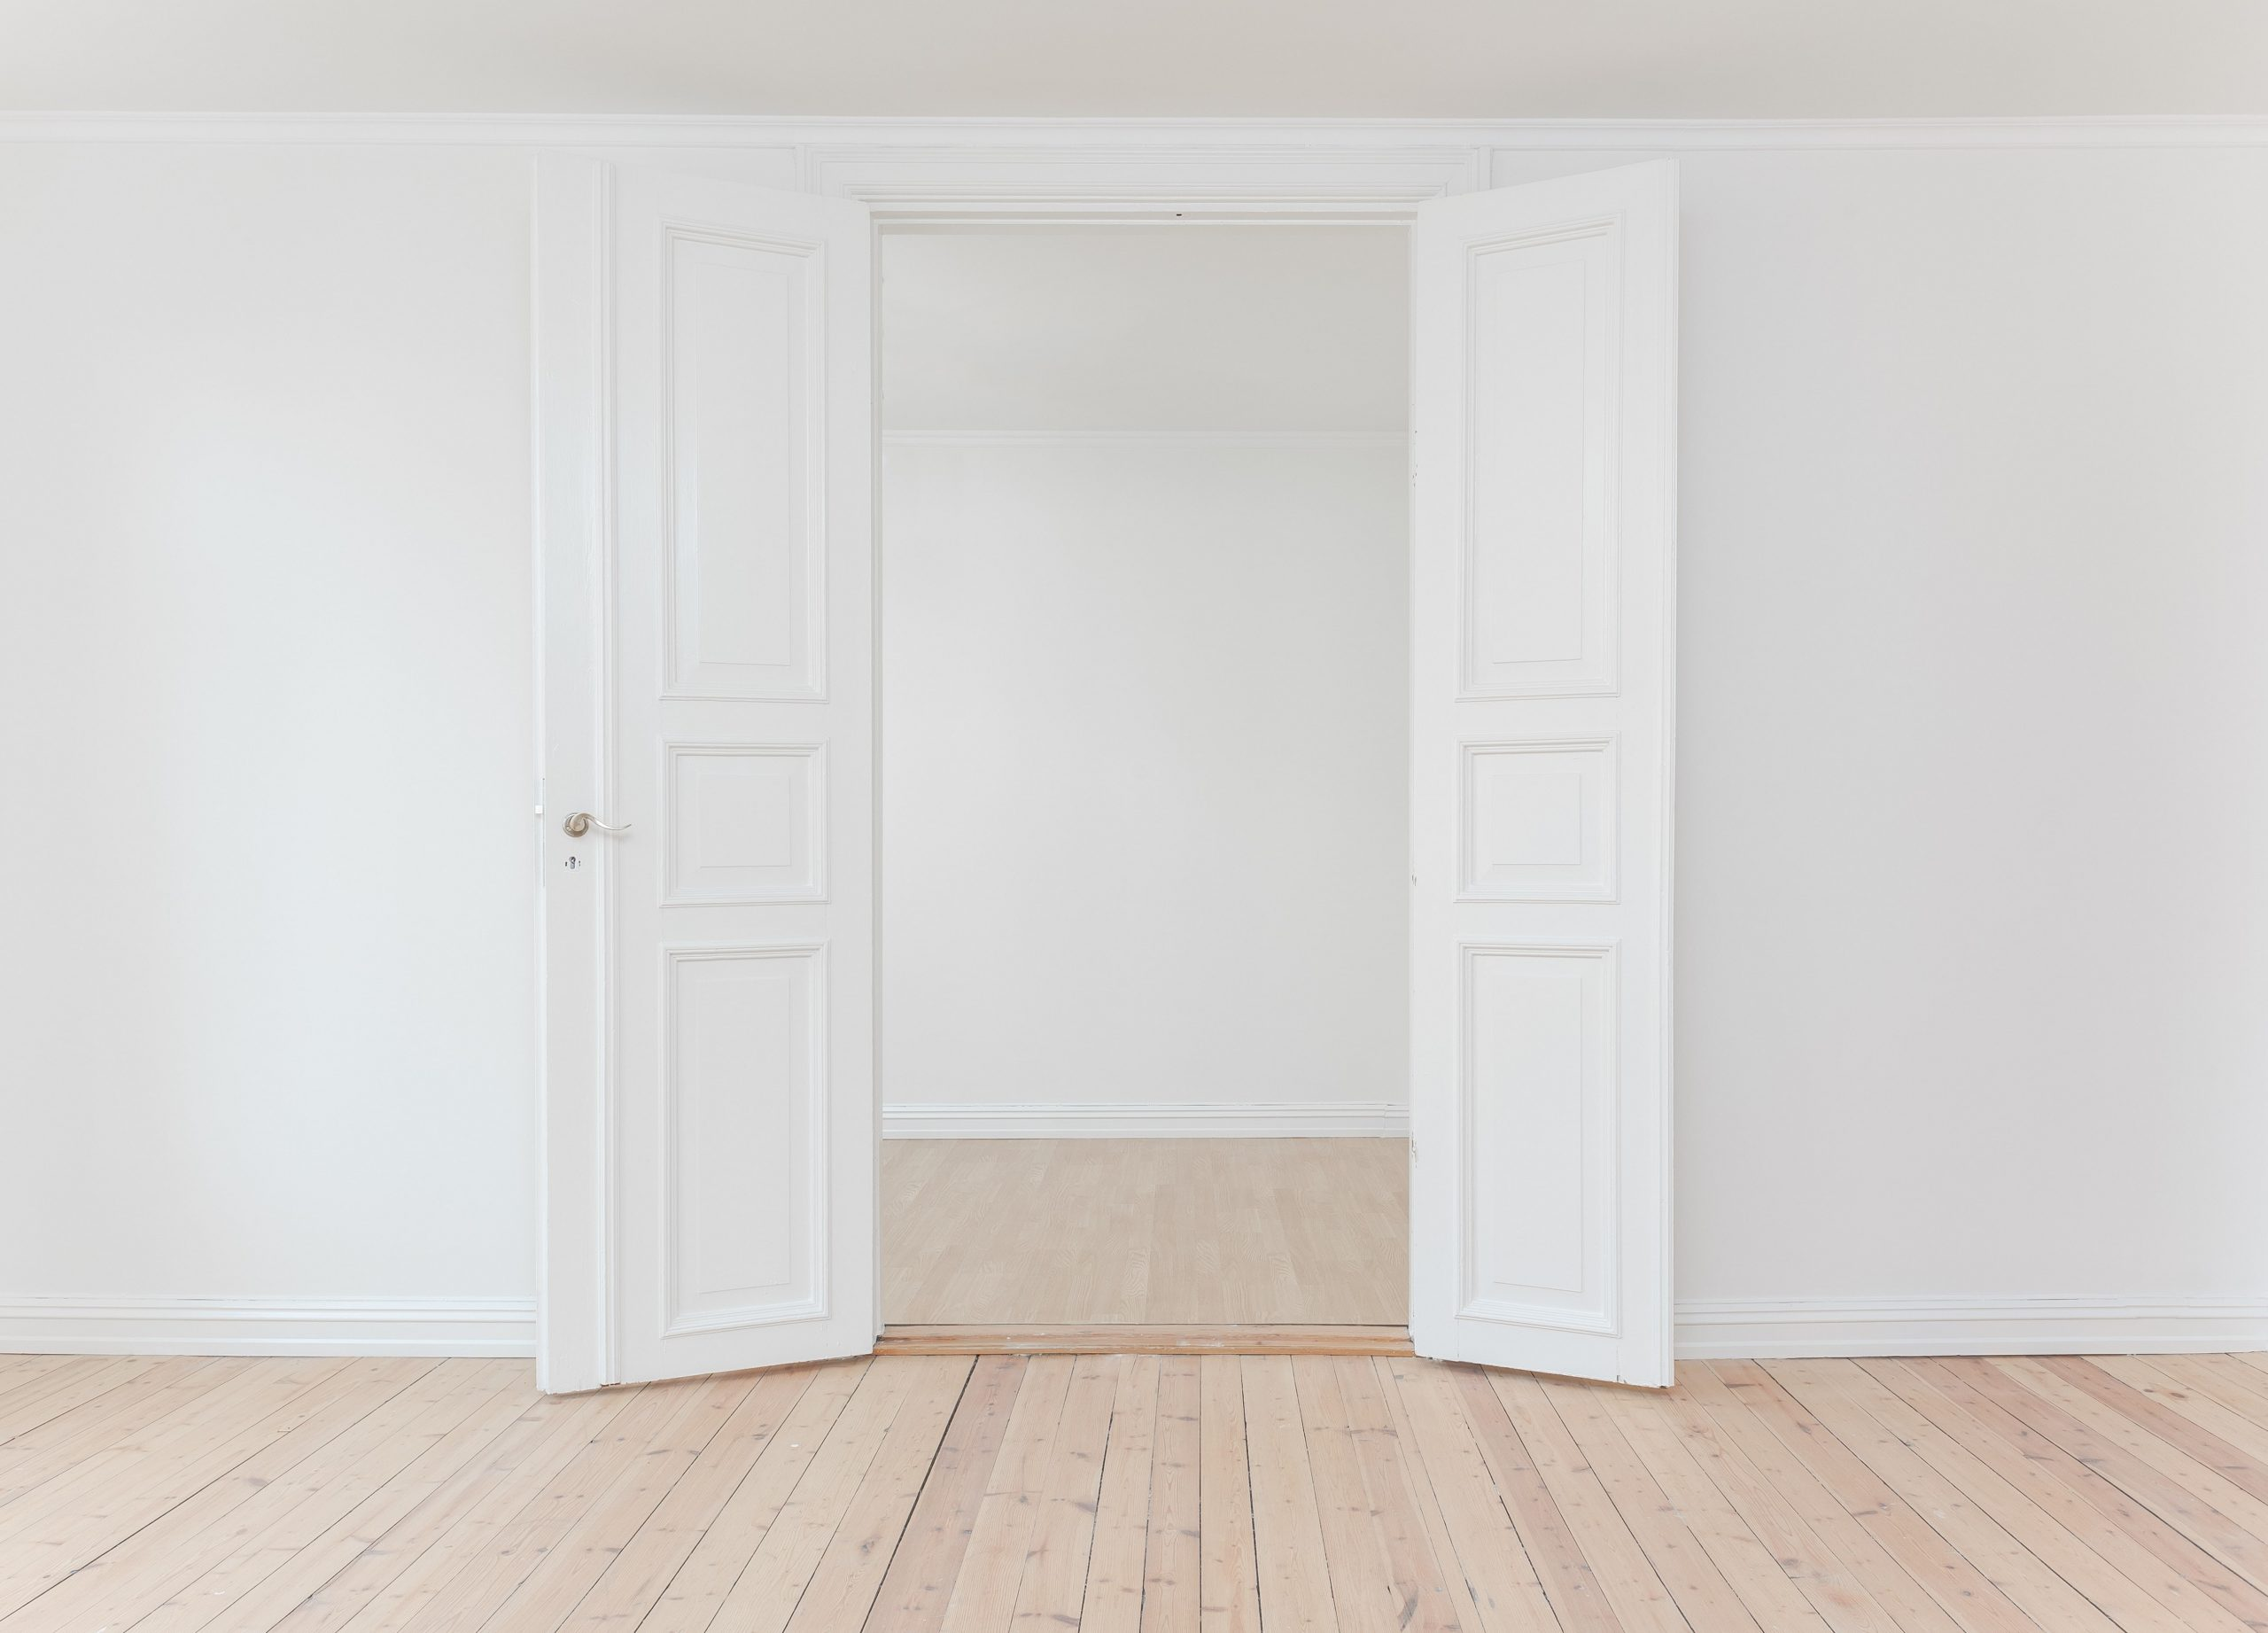 A simple white room with wooden crown molding